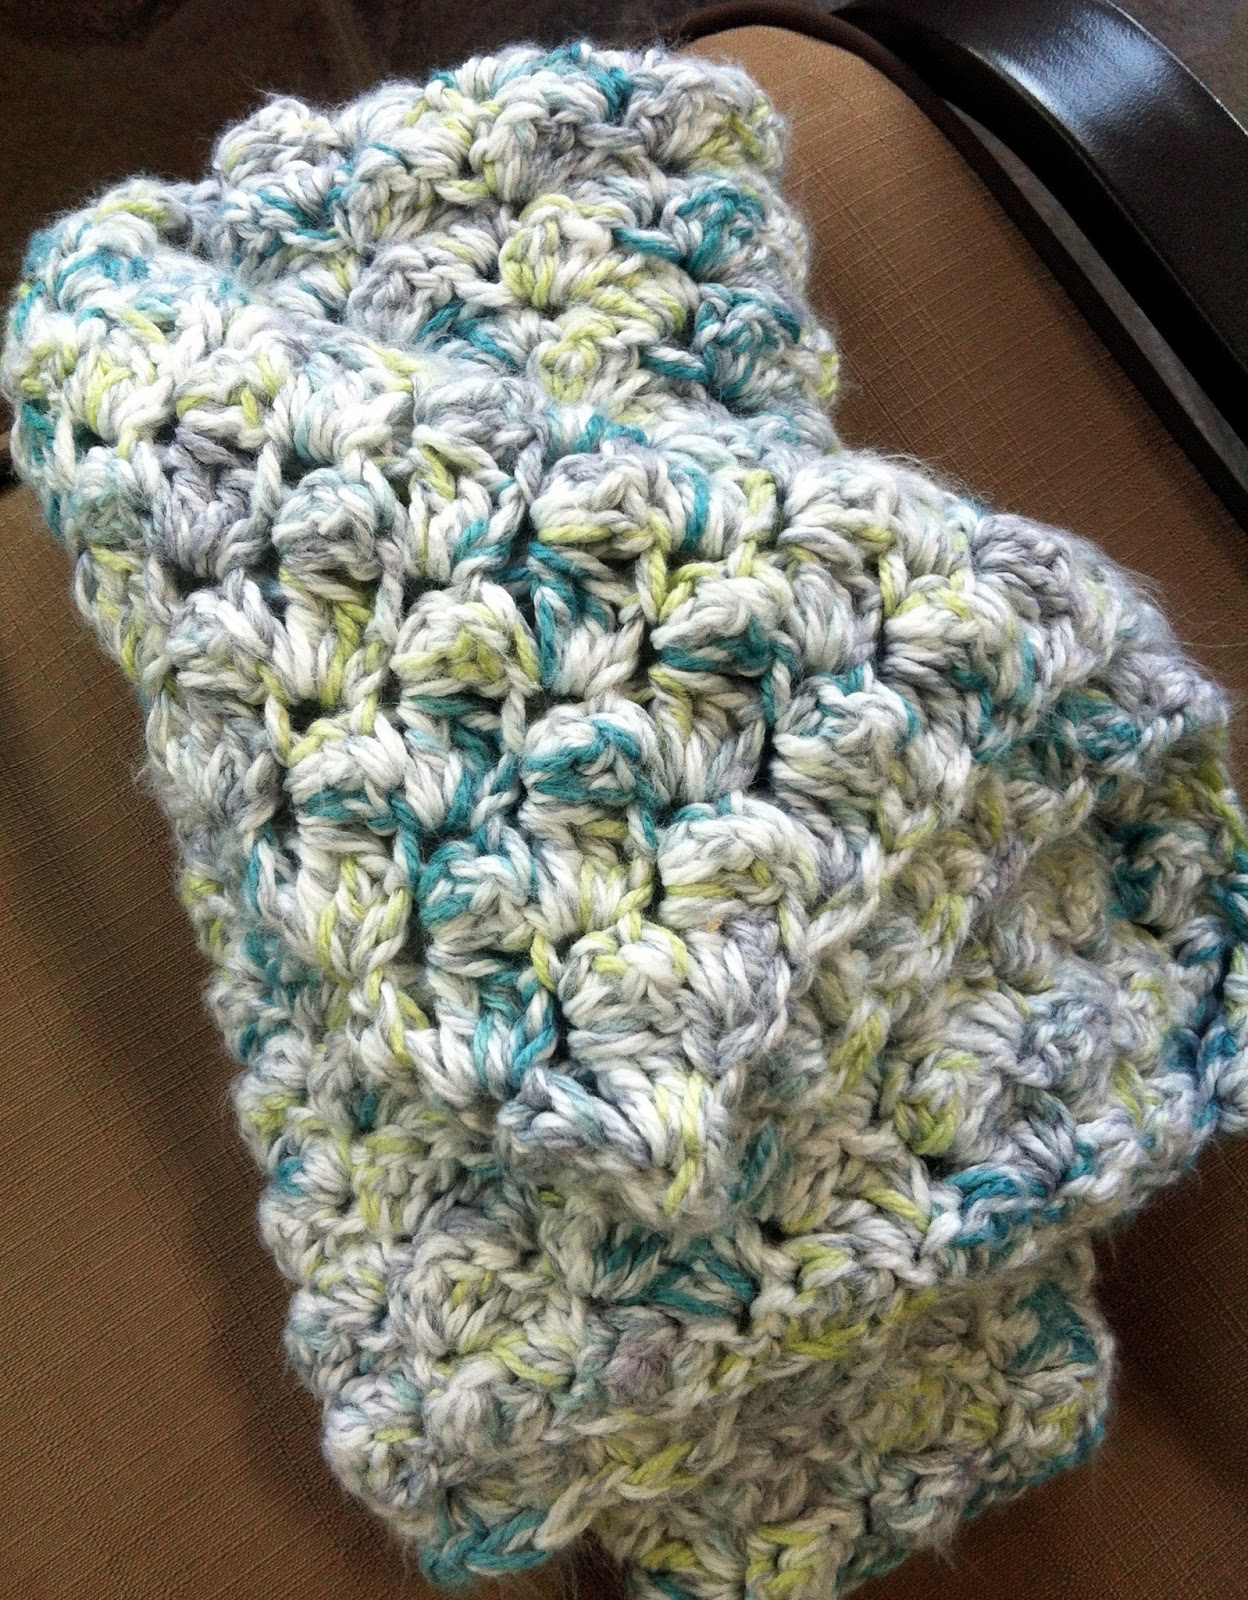 Crocheting Yarn : Inspire Me Grey: Two Easy Crochet Baby Blankets